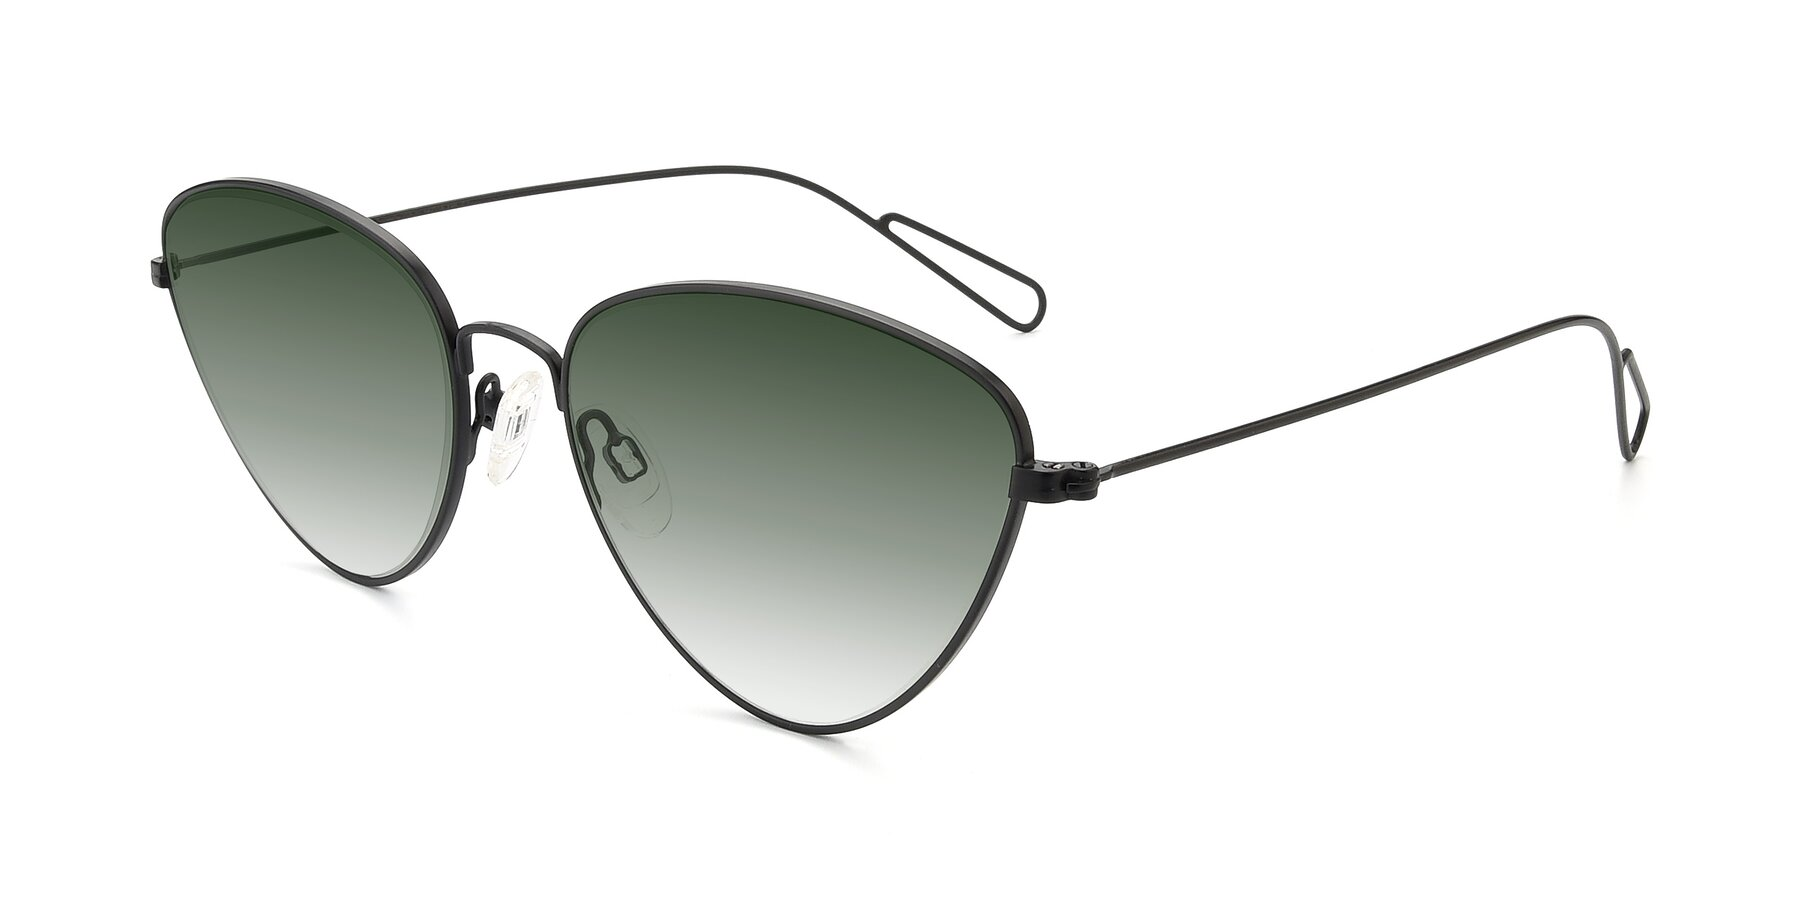 Angle of Butterfly Effect in Black with Green Gradient Lenses